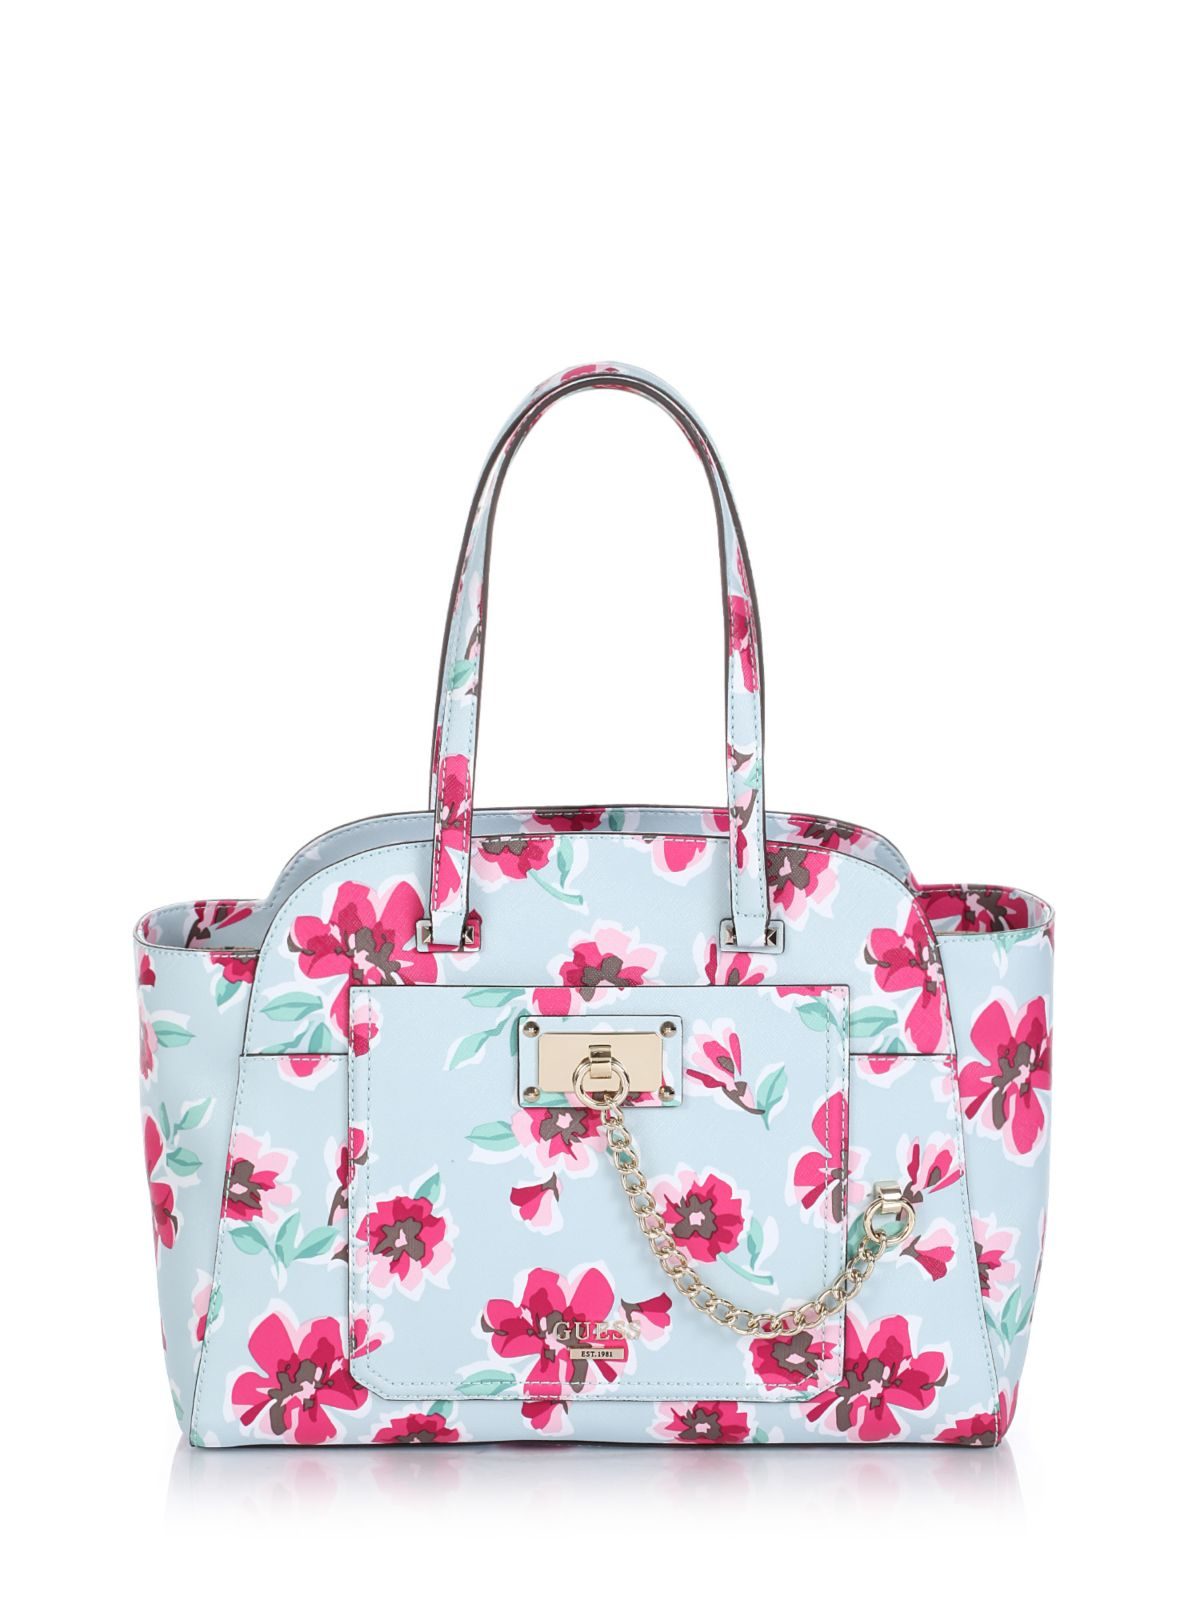 c925e3f576c9 Guess Draw a blank Me Not Privy Tote Floral Bag in Blue